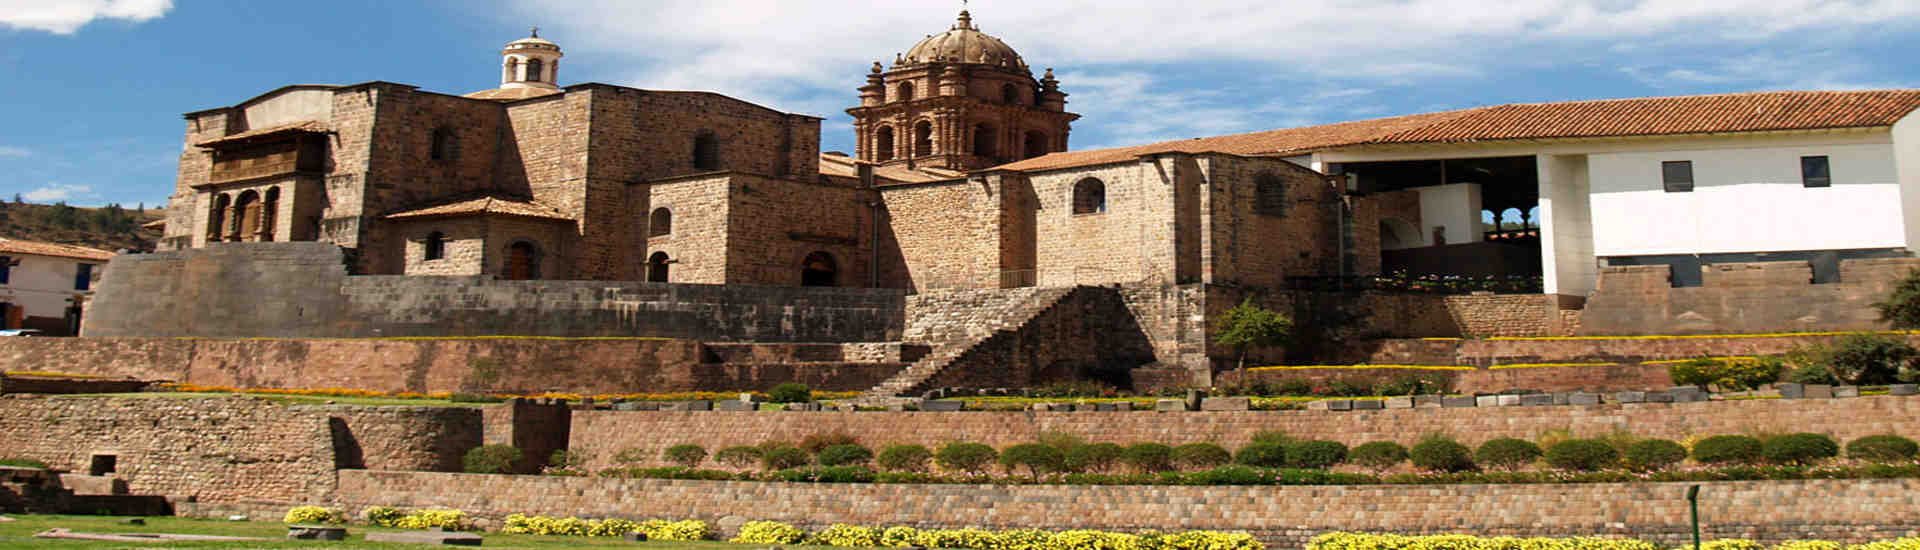 city tours cusco toursperumachupicchu.com